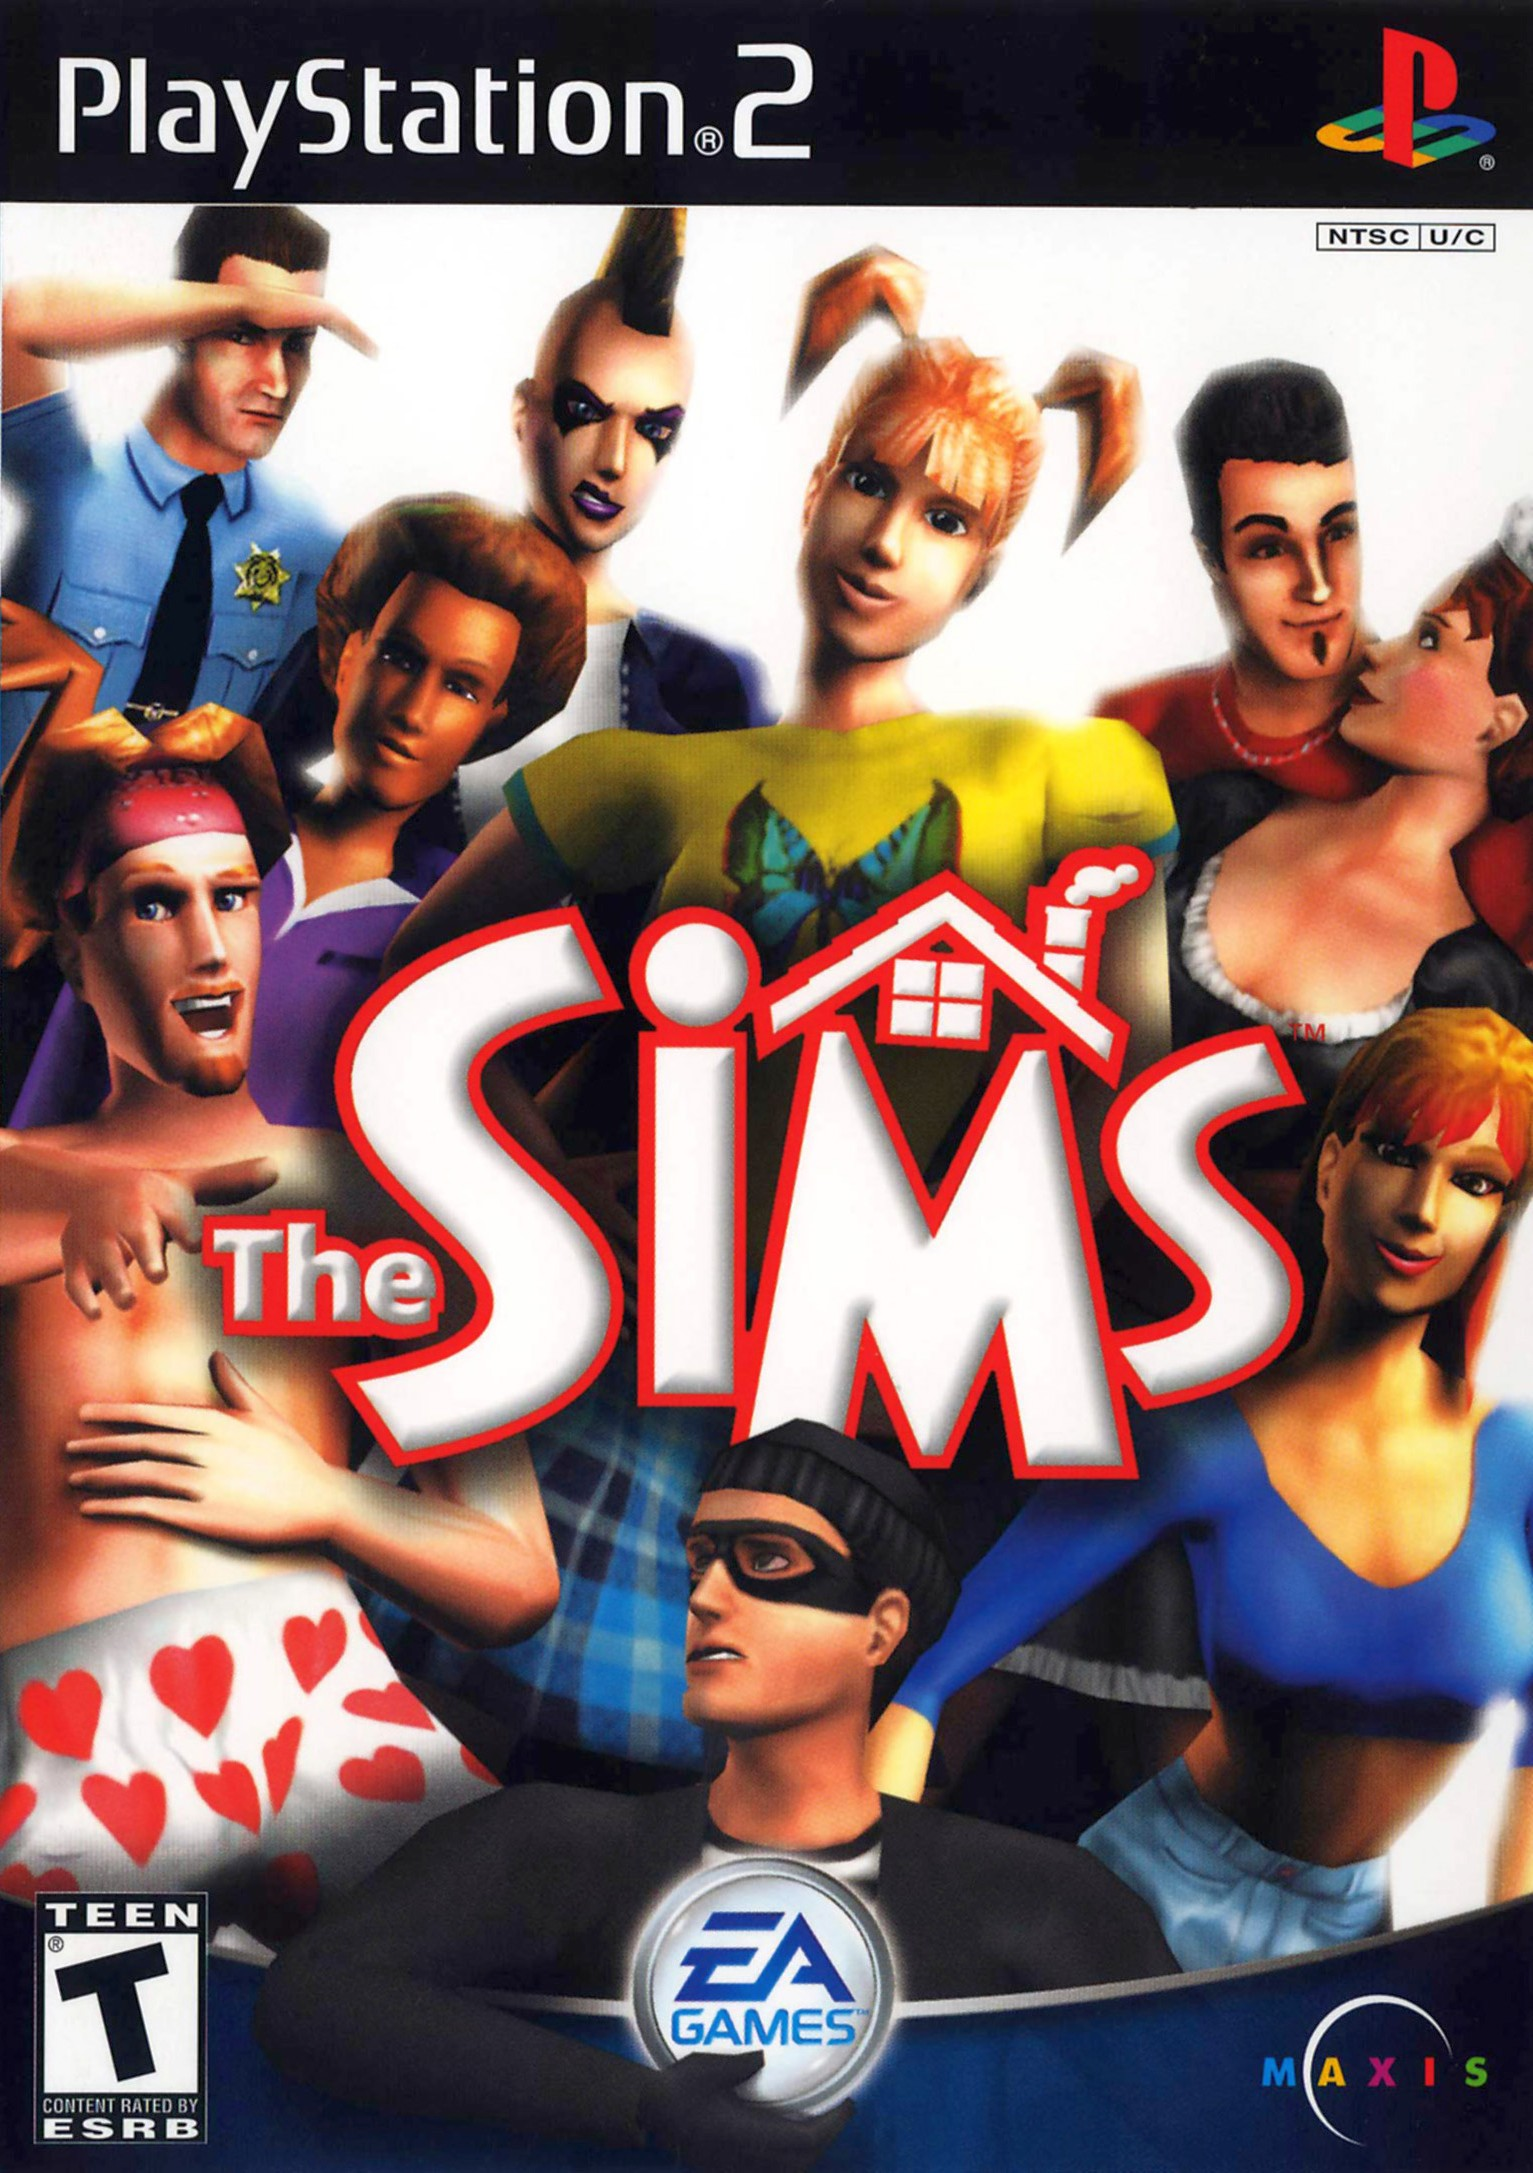 The Sims/PS2